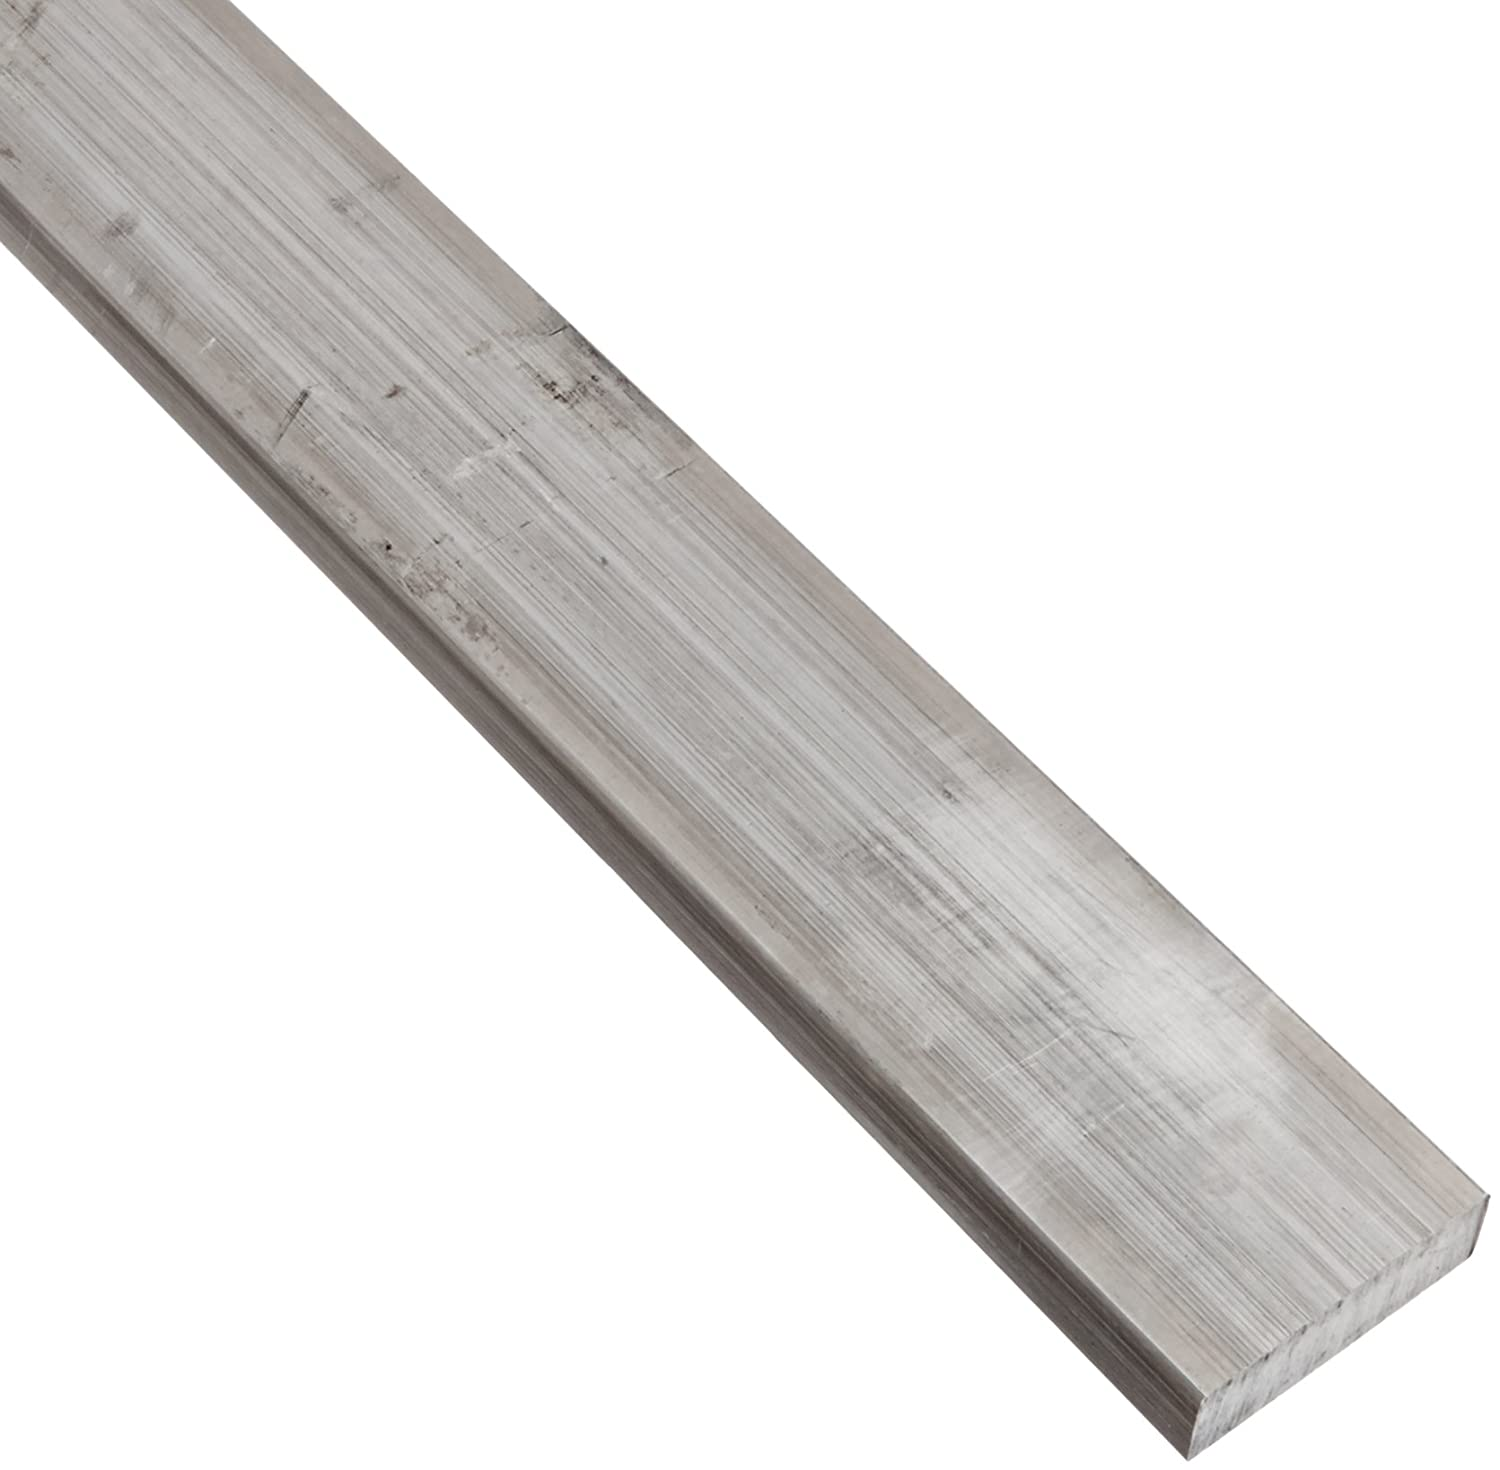 2024 Aluminum Rectangular Bar, Unpolished (Mill) Finish, T351 Temper, Meets ASTM B211, 1/2' Thickness, 2 1/2' Width, 12' Length 1/2 Thickness 2 1/2 Width 12 Length Small Parts Inc 97239